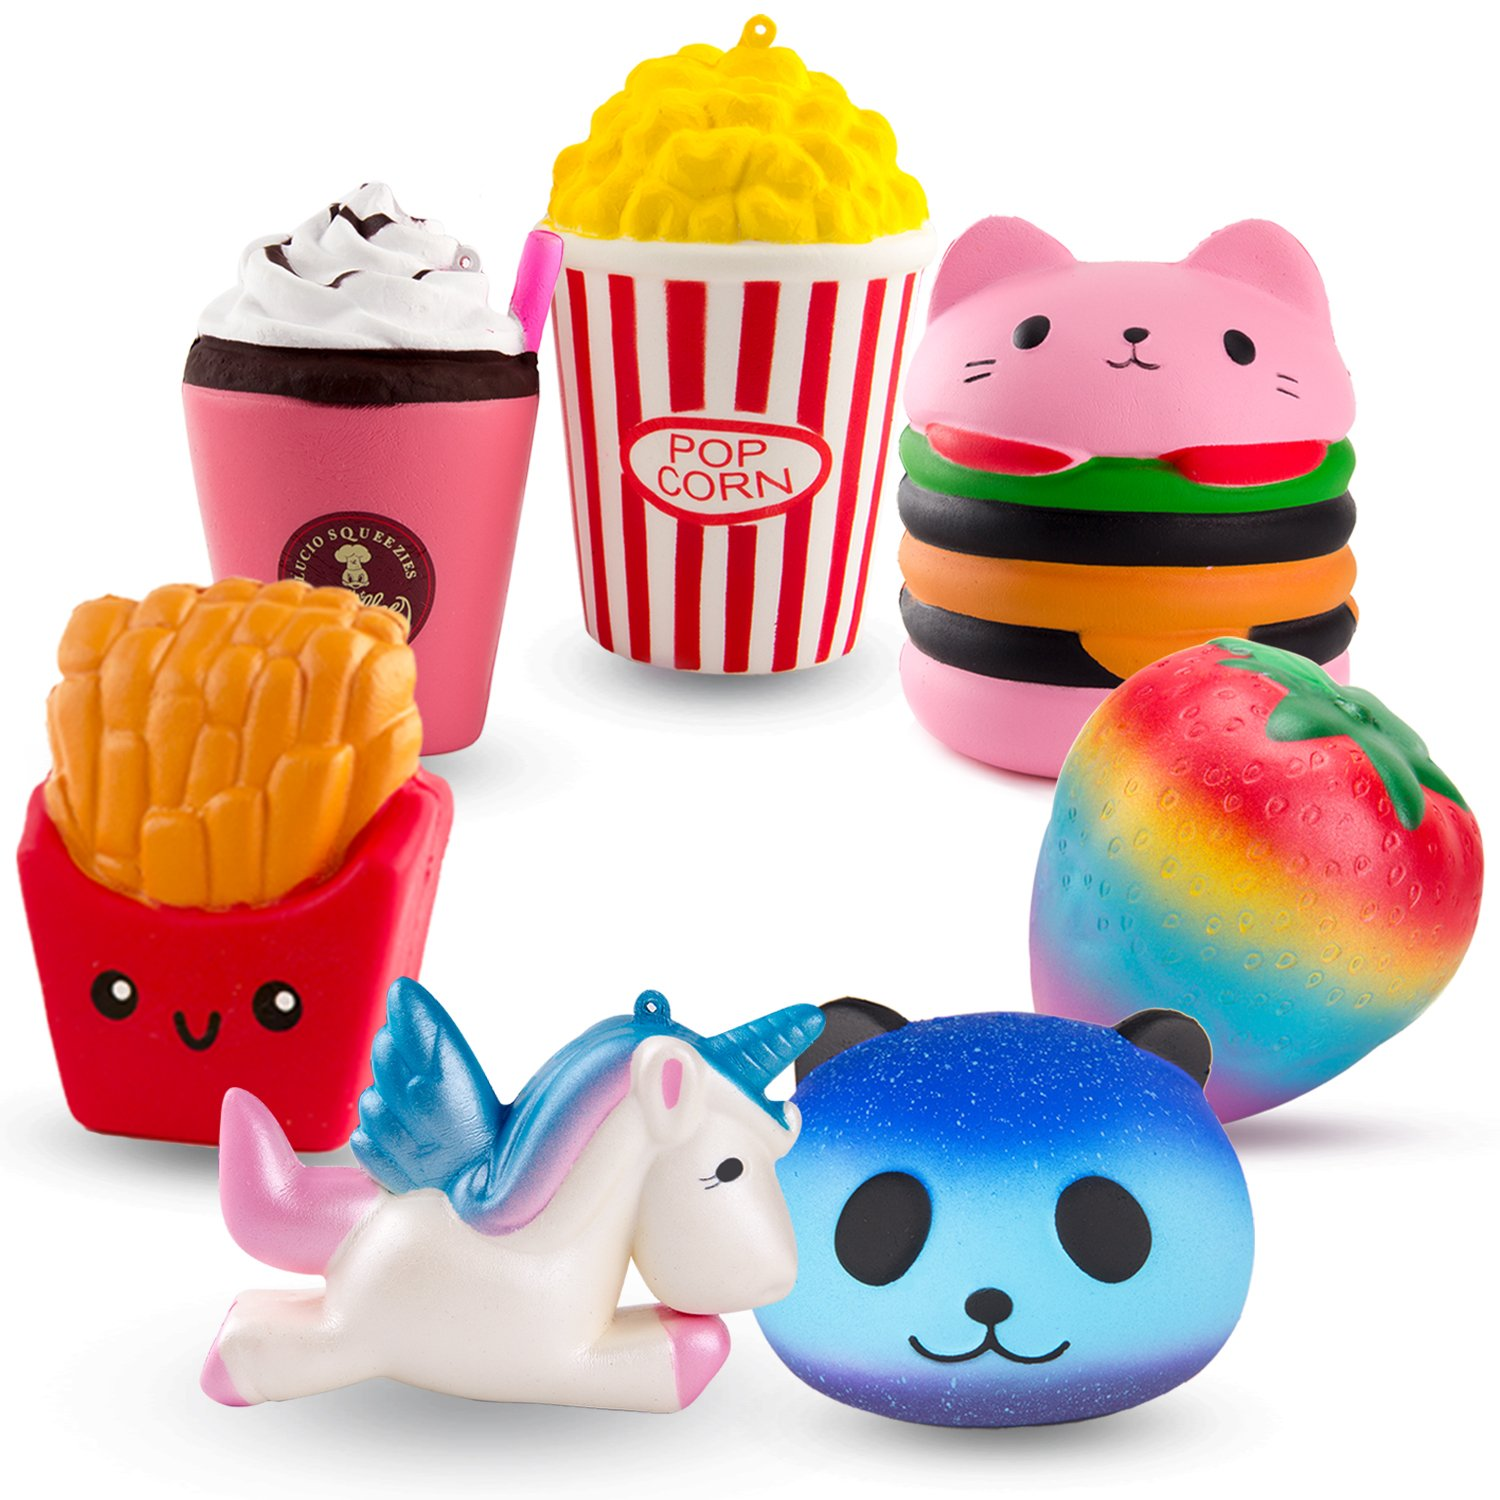 Novelty & Gag Toys 2019 Cute Rainbow Bread Ice Cream Kid Toys Squishy Squeeze Toy Slow Rising Relieves Stress Anxiety Attention To Adult Gags & Practical Jokes